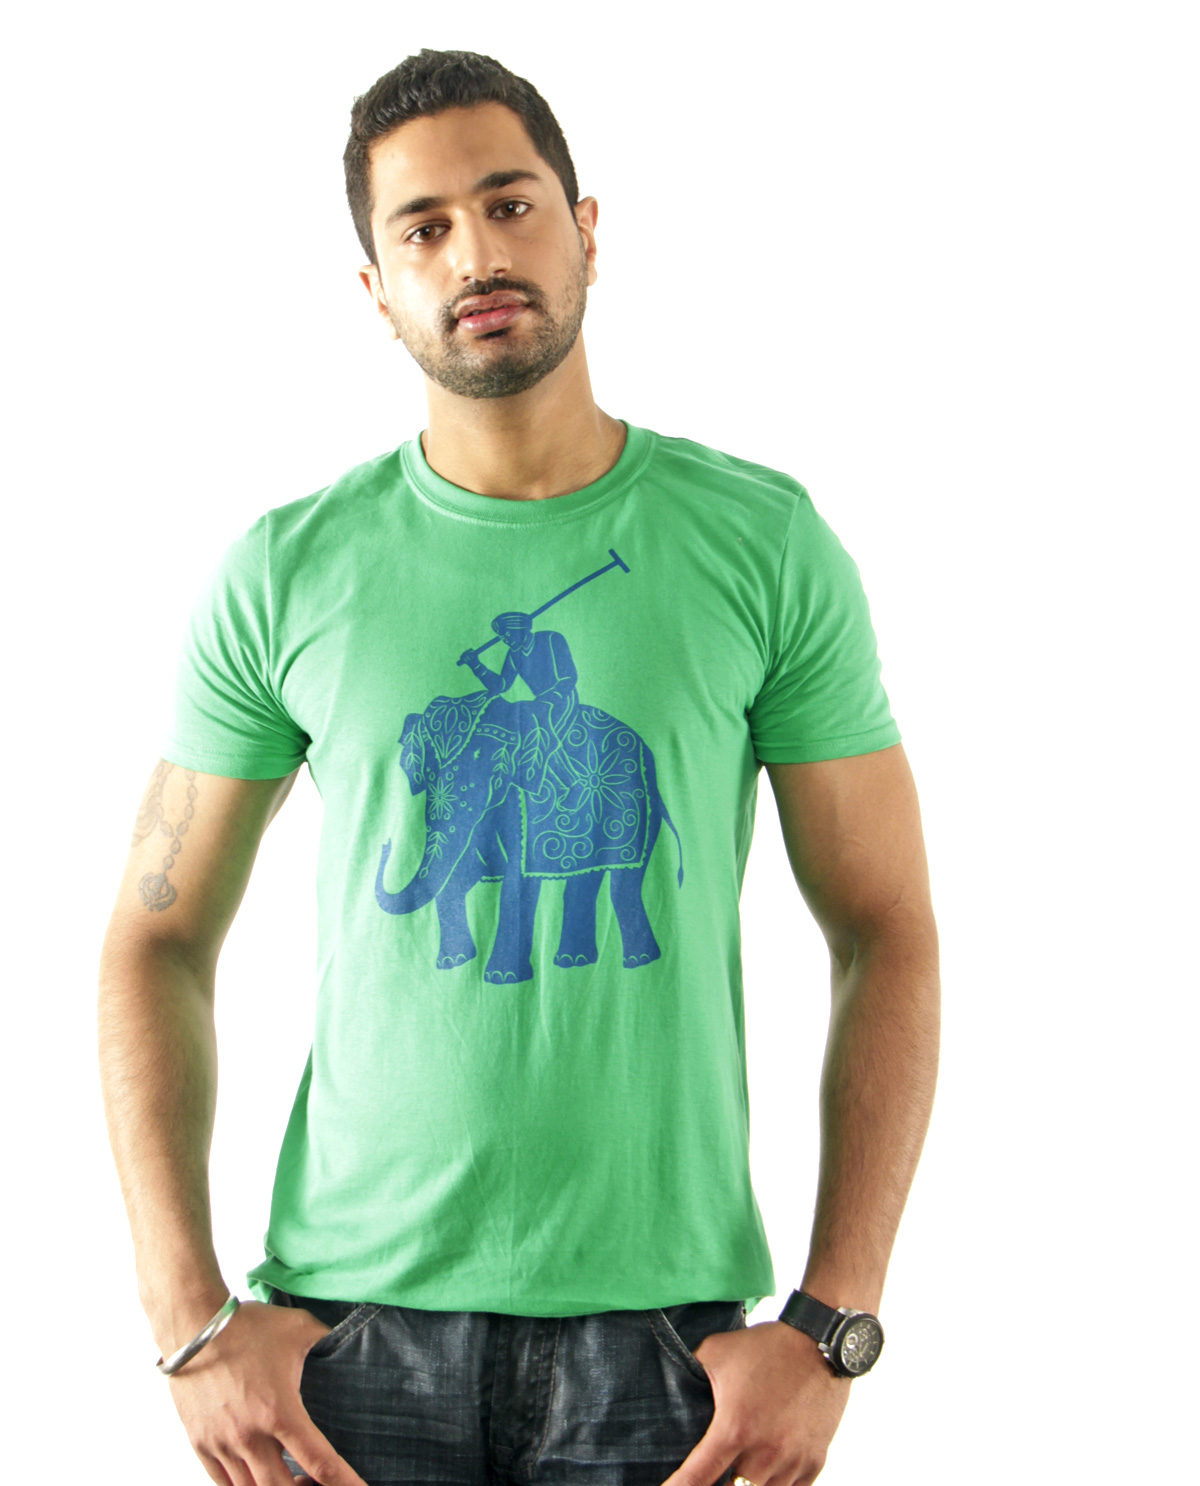 South Asian male model wearing SoftStyle green Elephant Polo t.shirt. South Asian Desi Themed Graphic Design t-shirt collection by Brown Man Clothing Co.